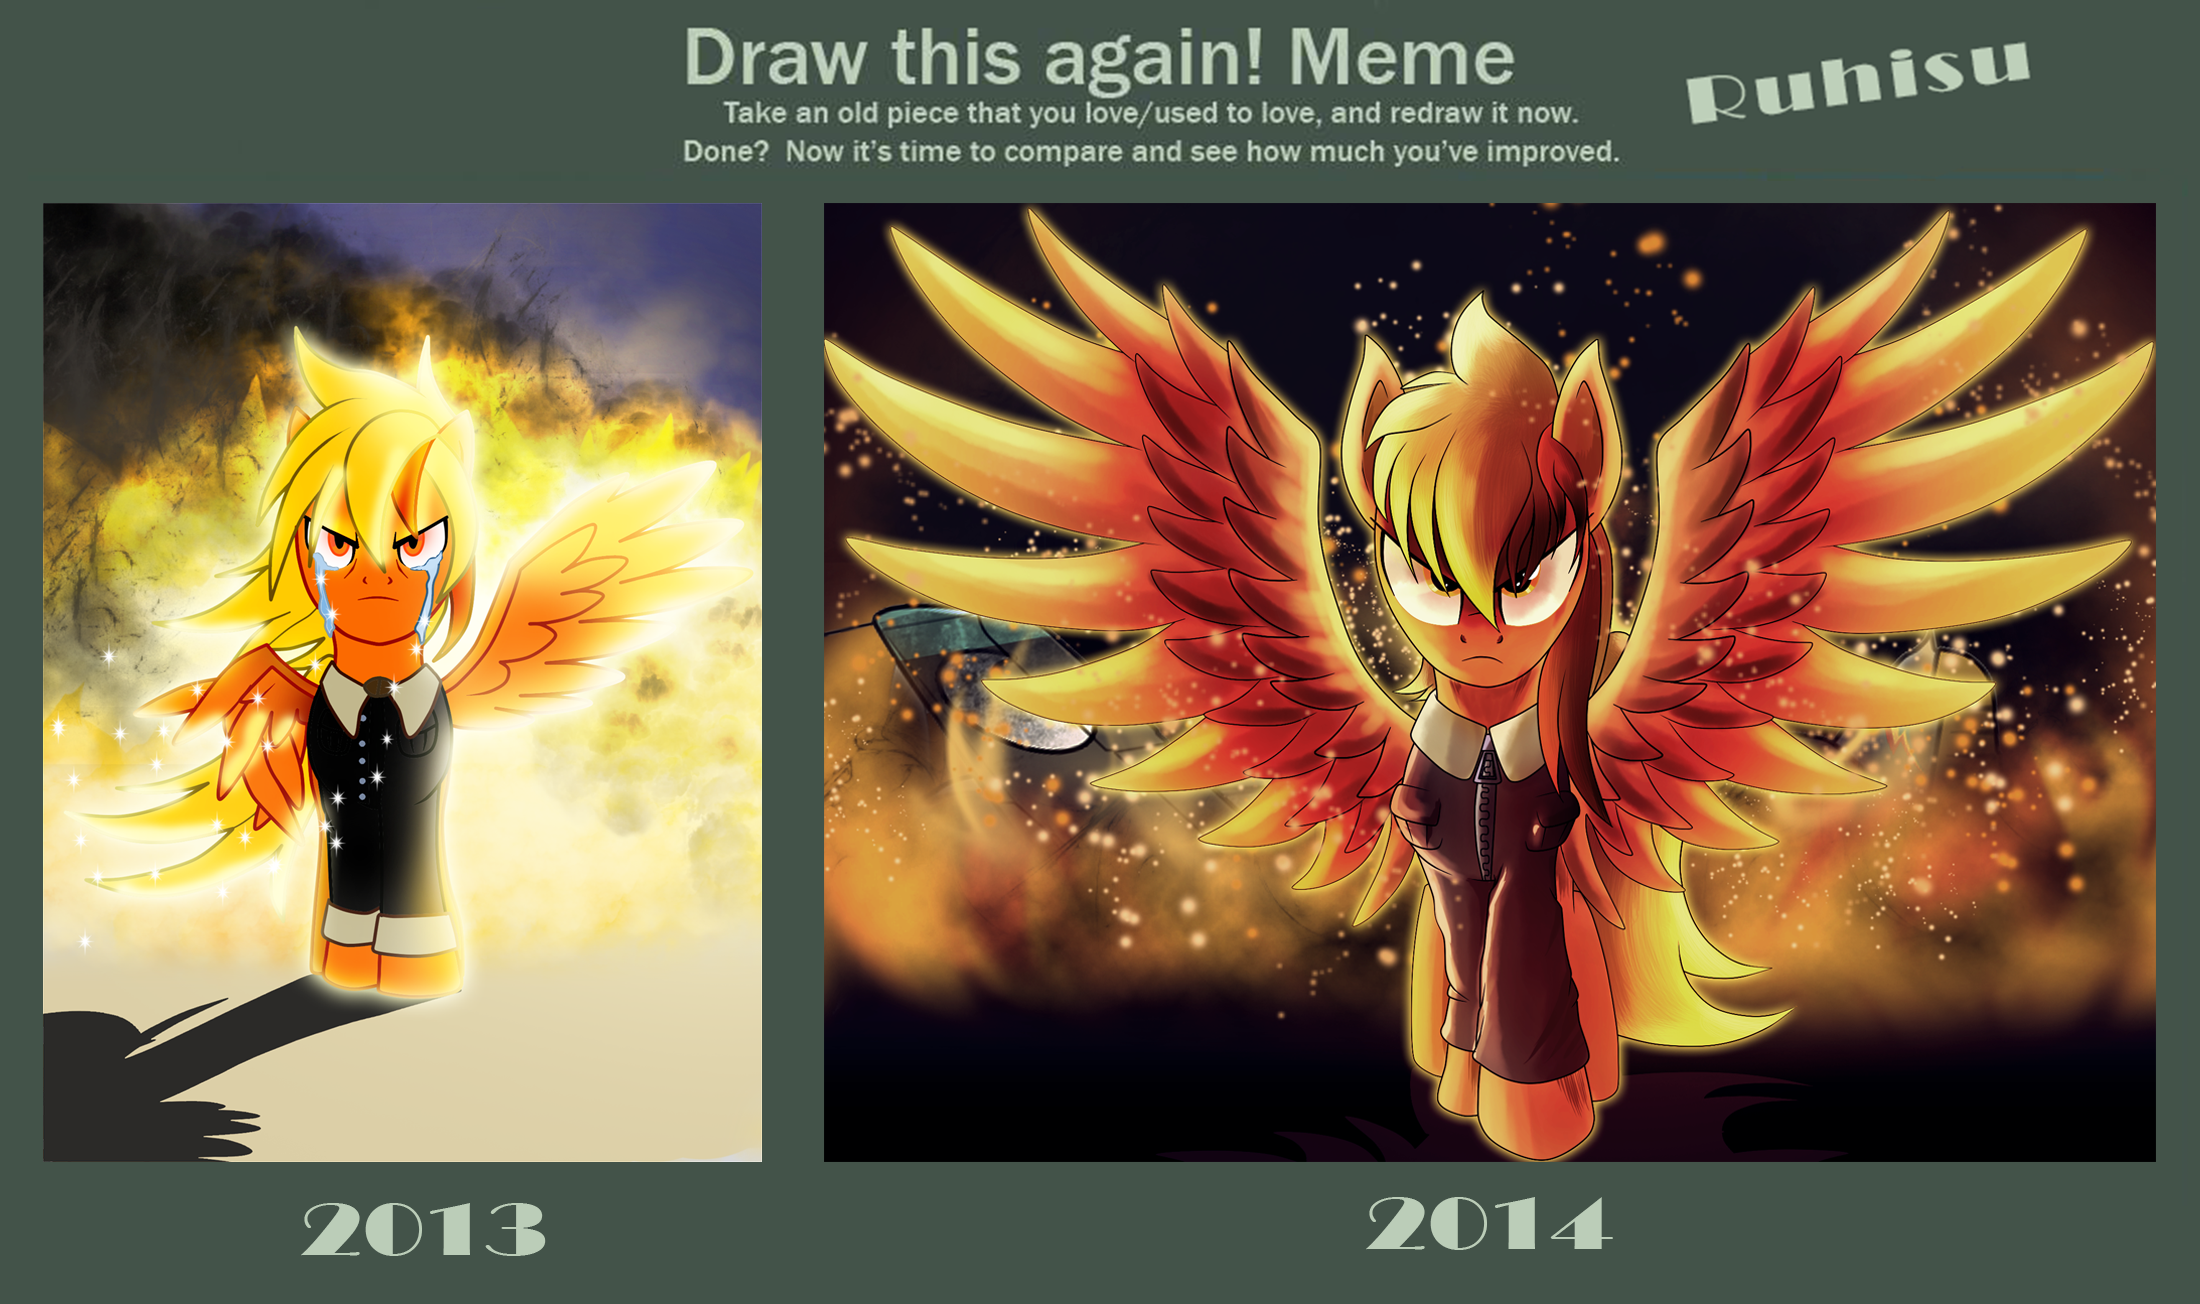 786092 Angry Artist Ruhisu Draw This Again Fire Front View